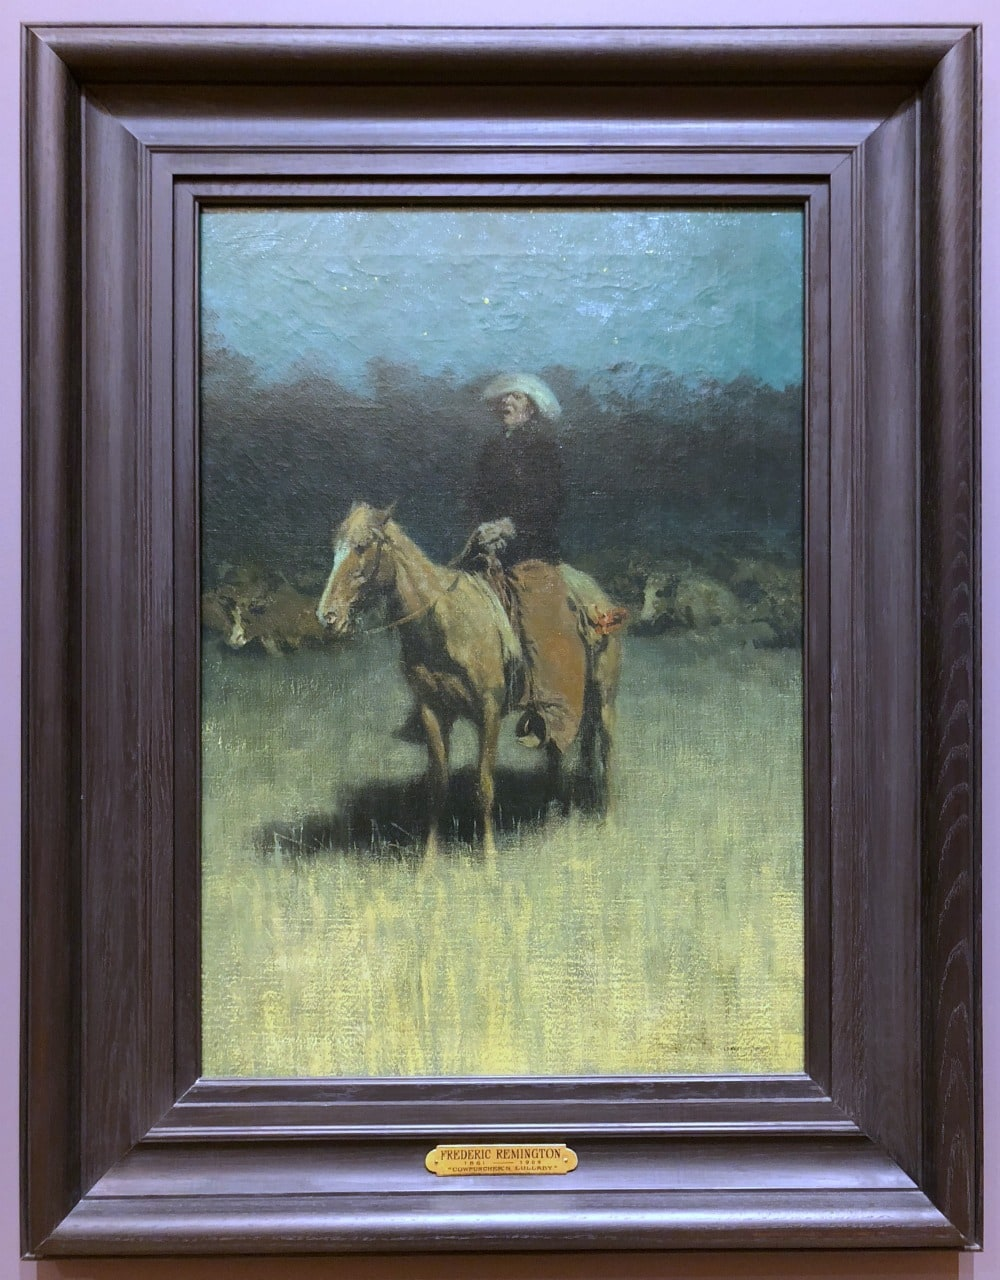 Art in Bentonville, Arkansas - Crystal Bridges Museum Fredric Remington